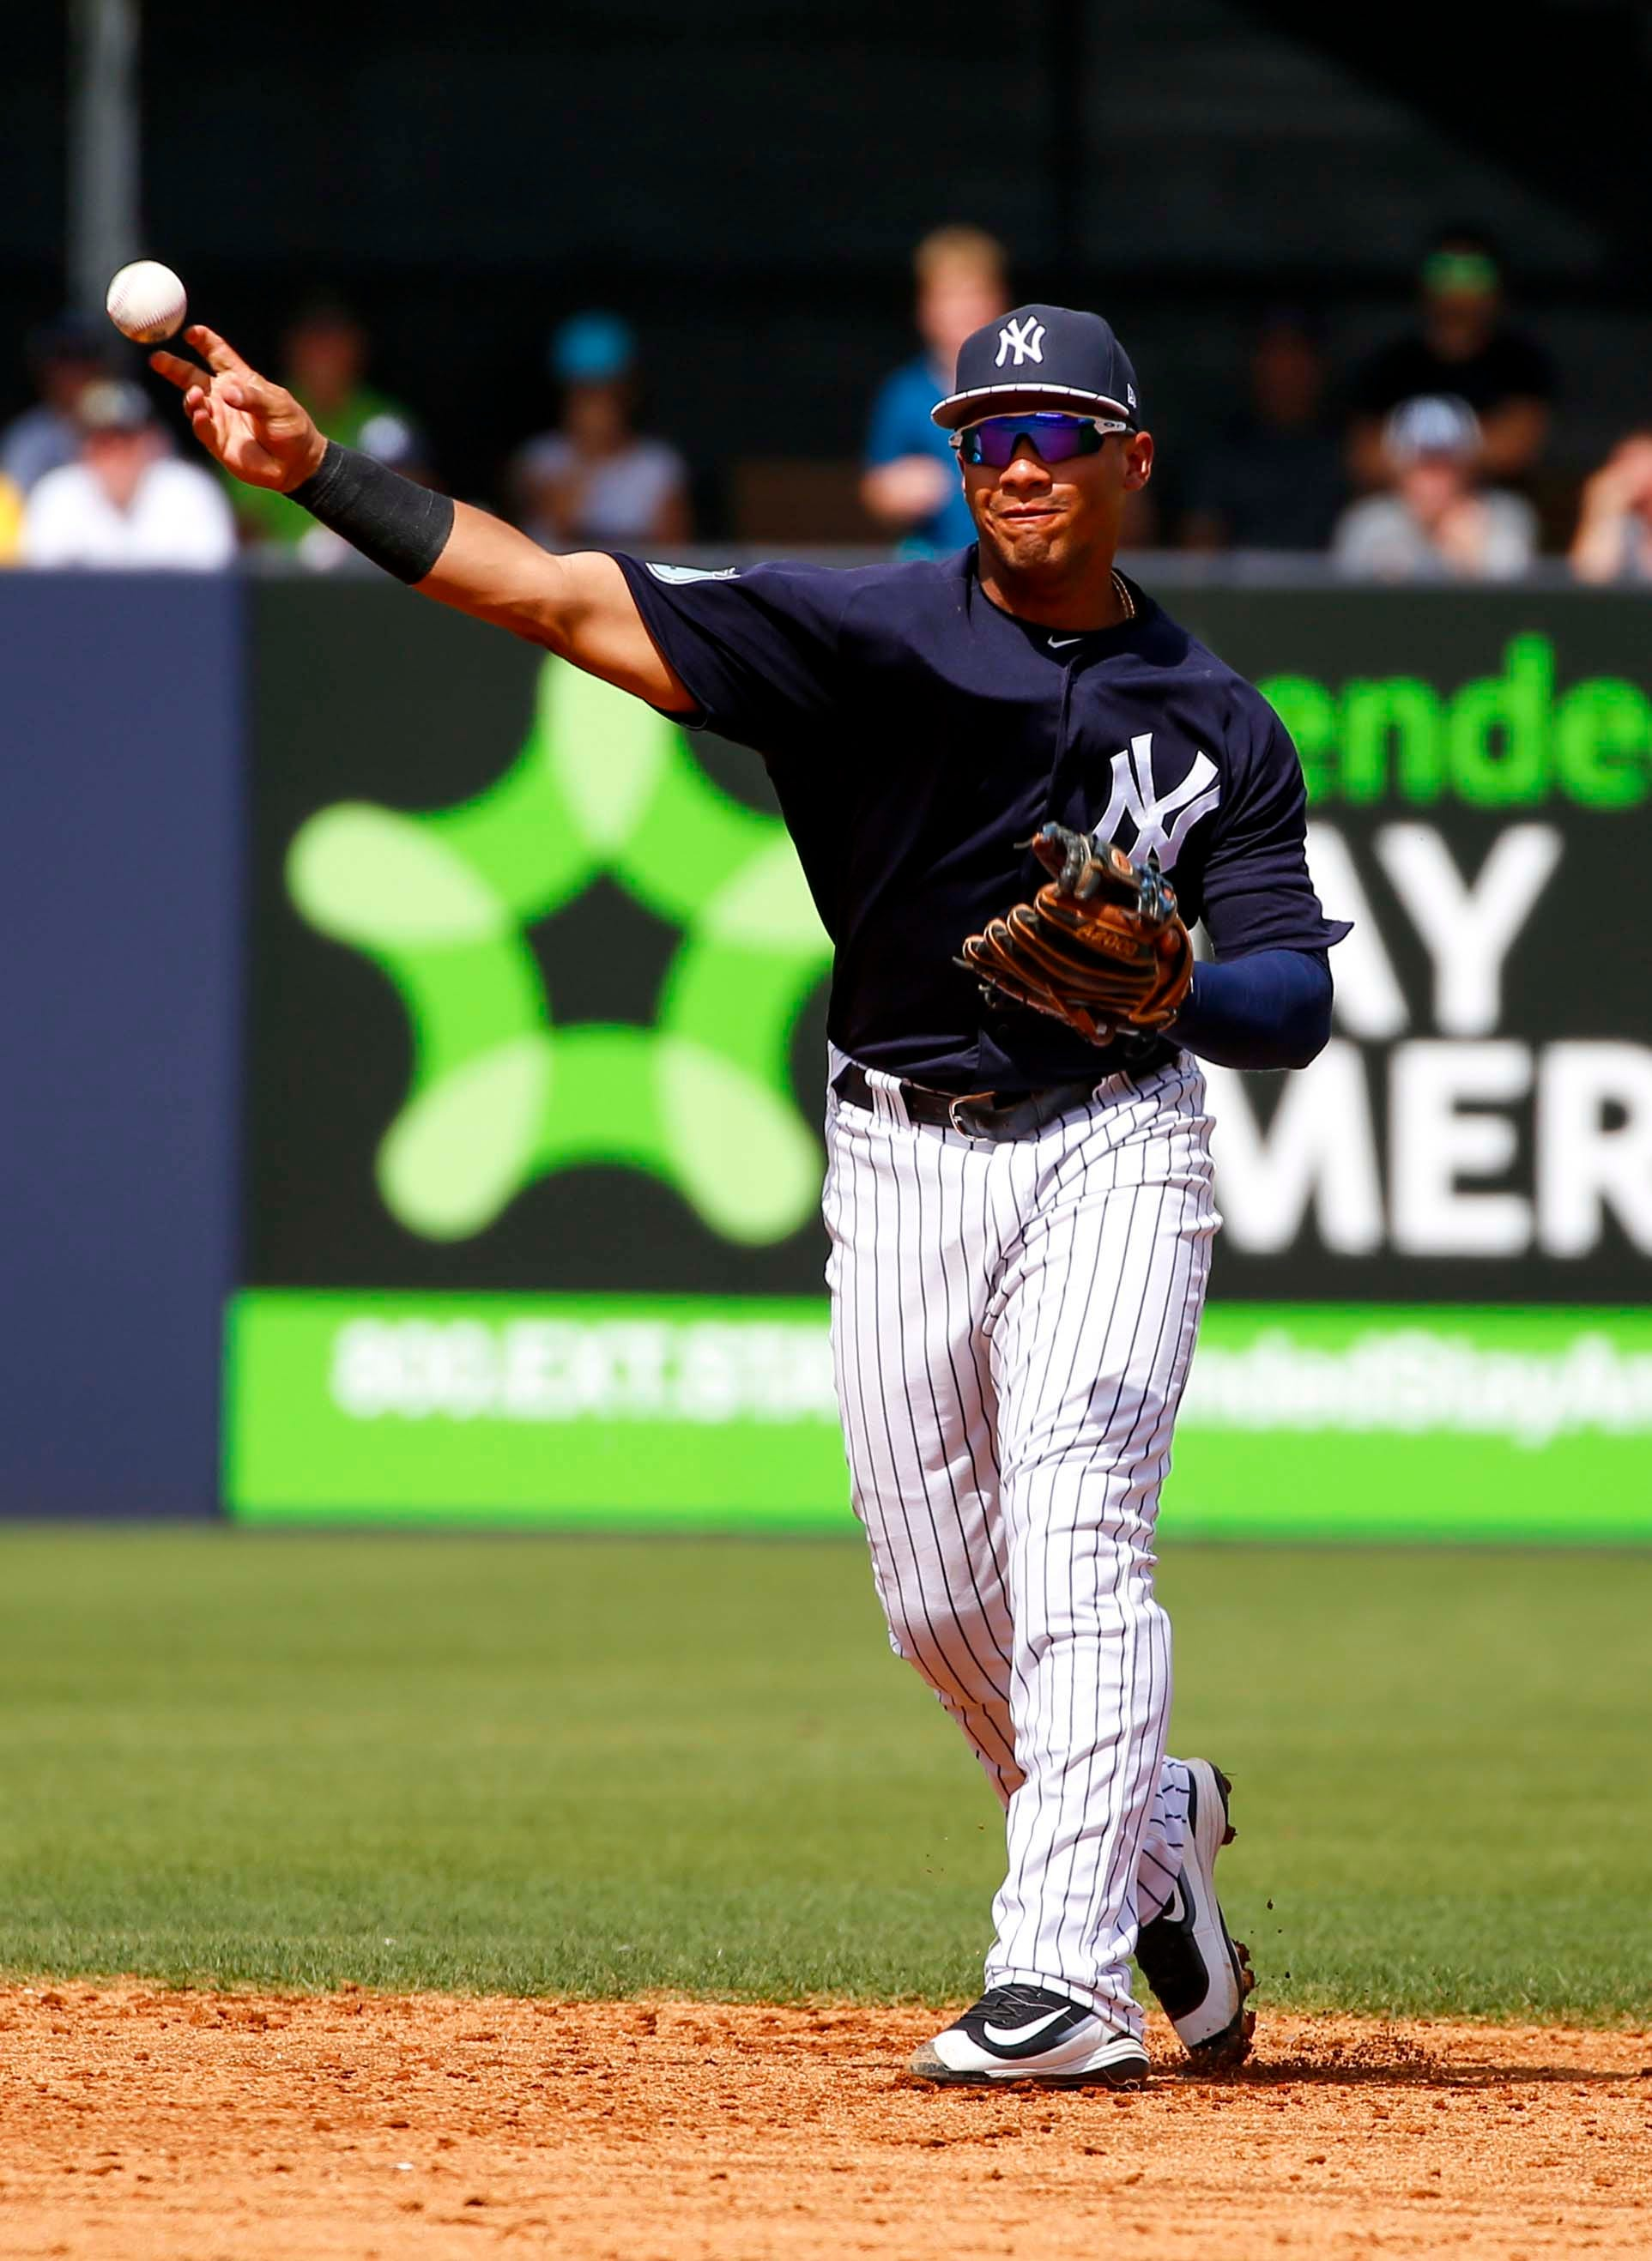 Klapisch: Who gets to NY first: Torres or Rosario?